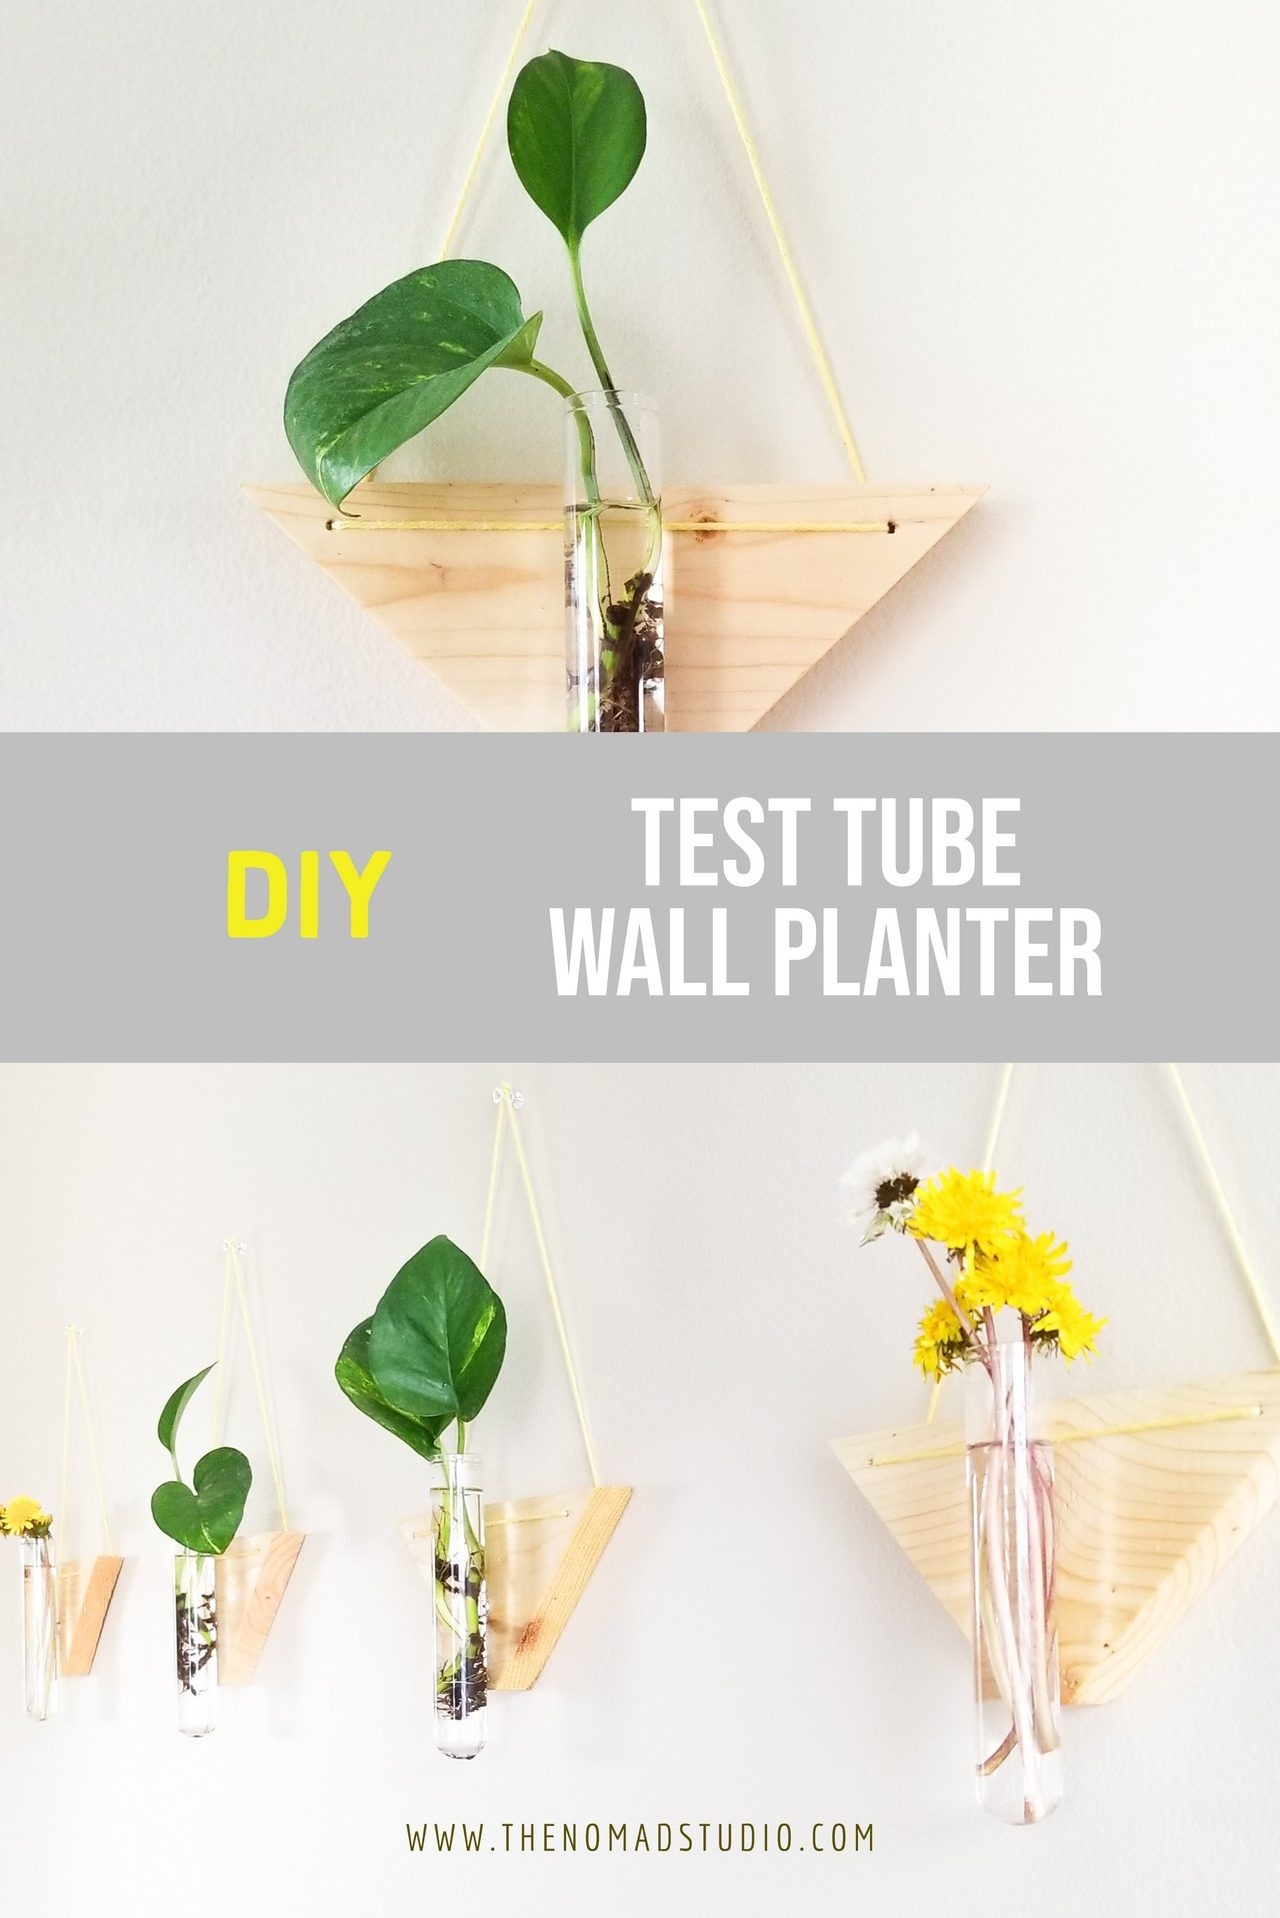 Test Tube Wall Planter